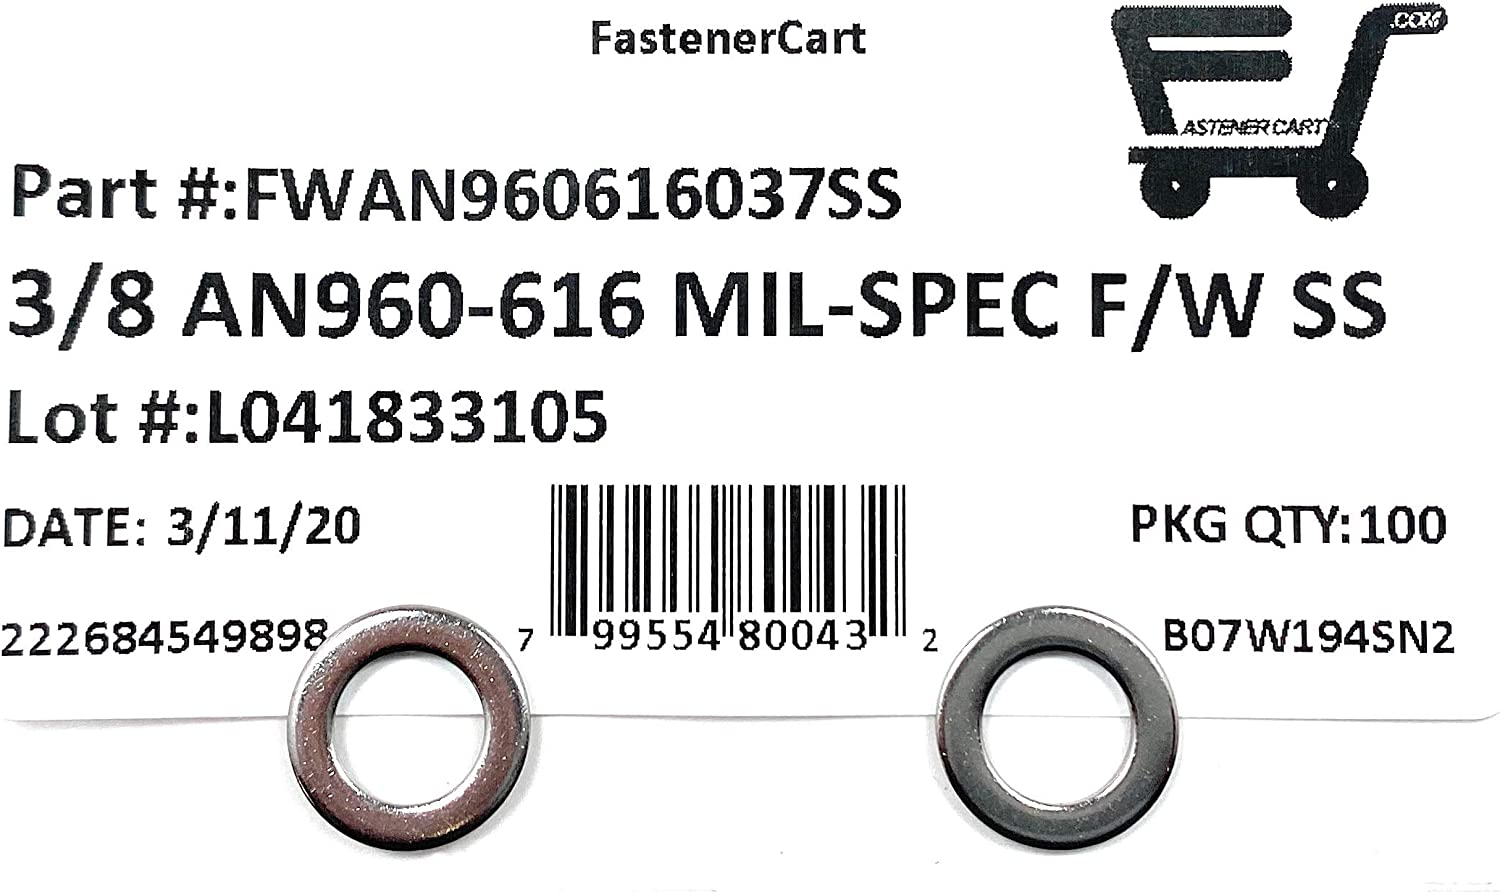 3//8 ID x 5//8 OD x.062 THK 3//8 AN960-616 Mil-Spec Flat Washers Stainless Steel AN960-616 100 Pieces